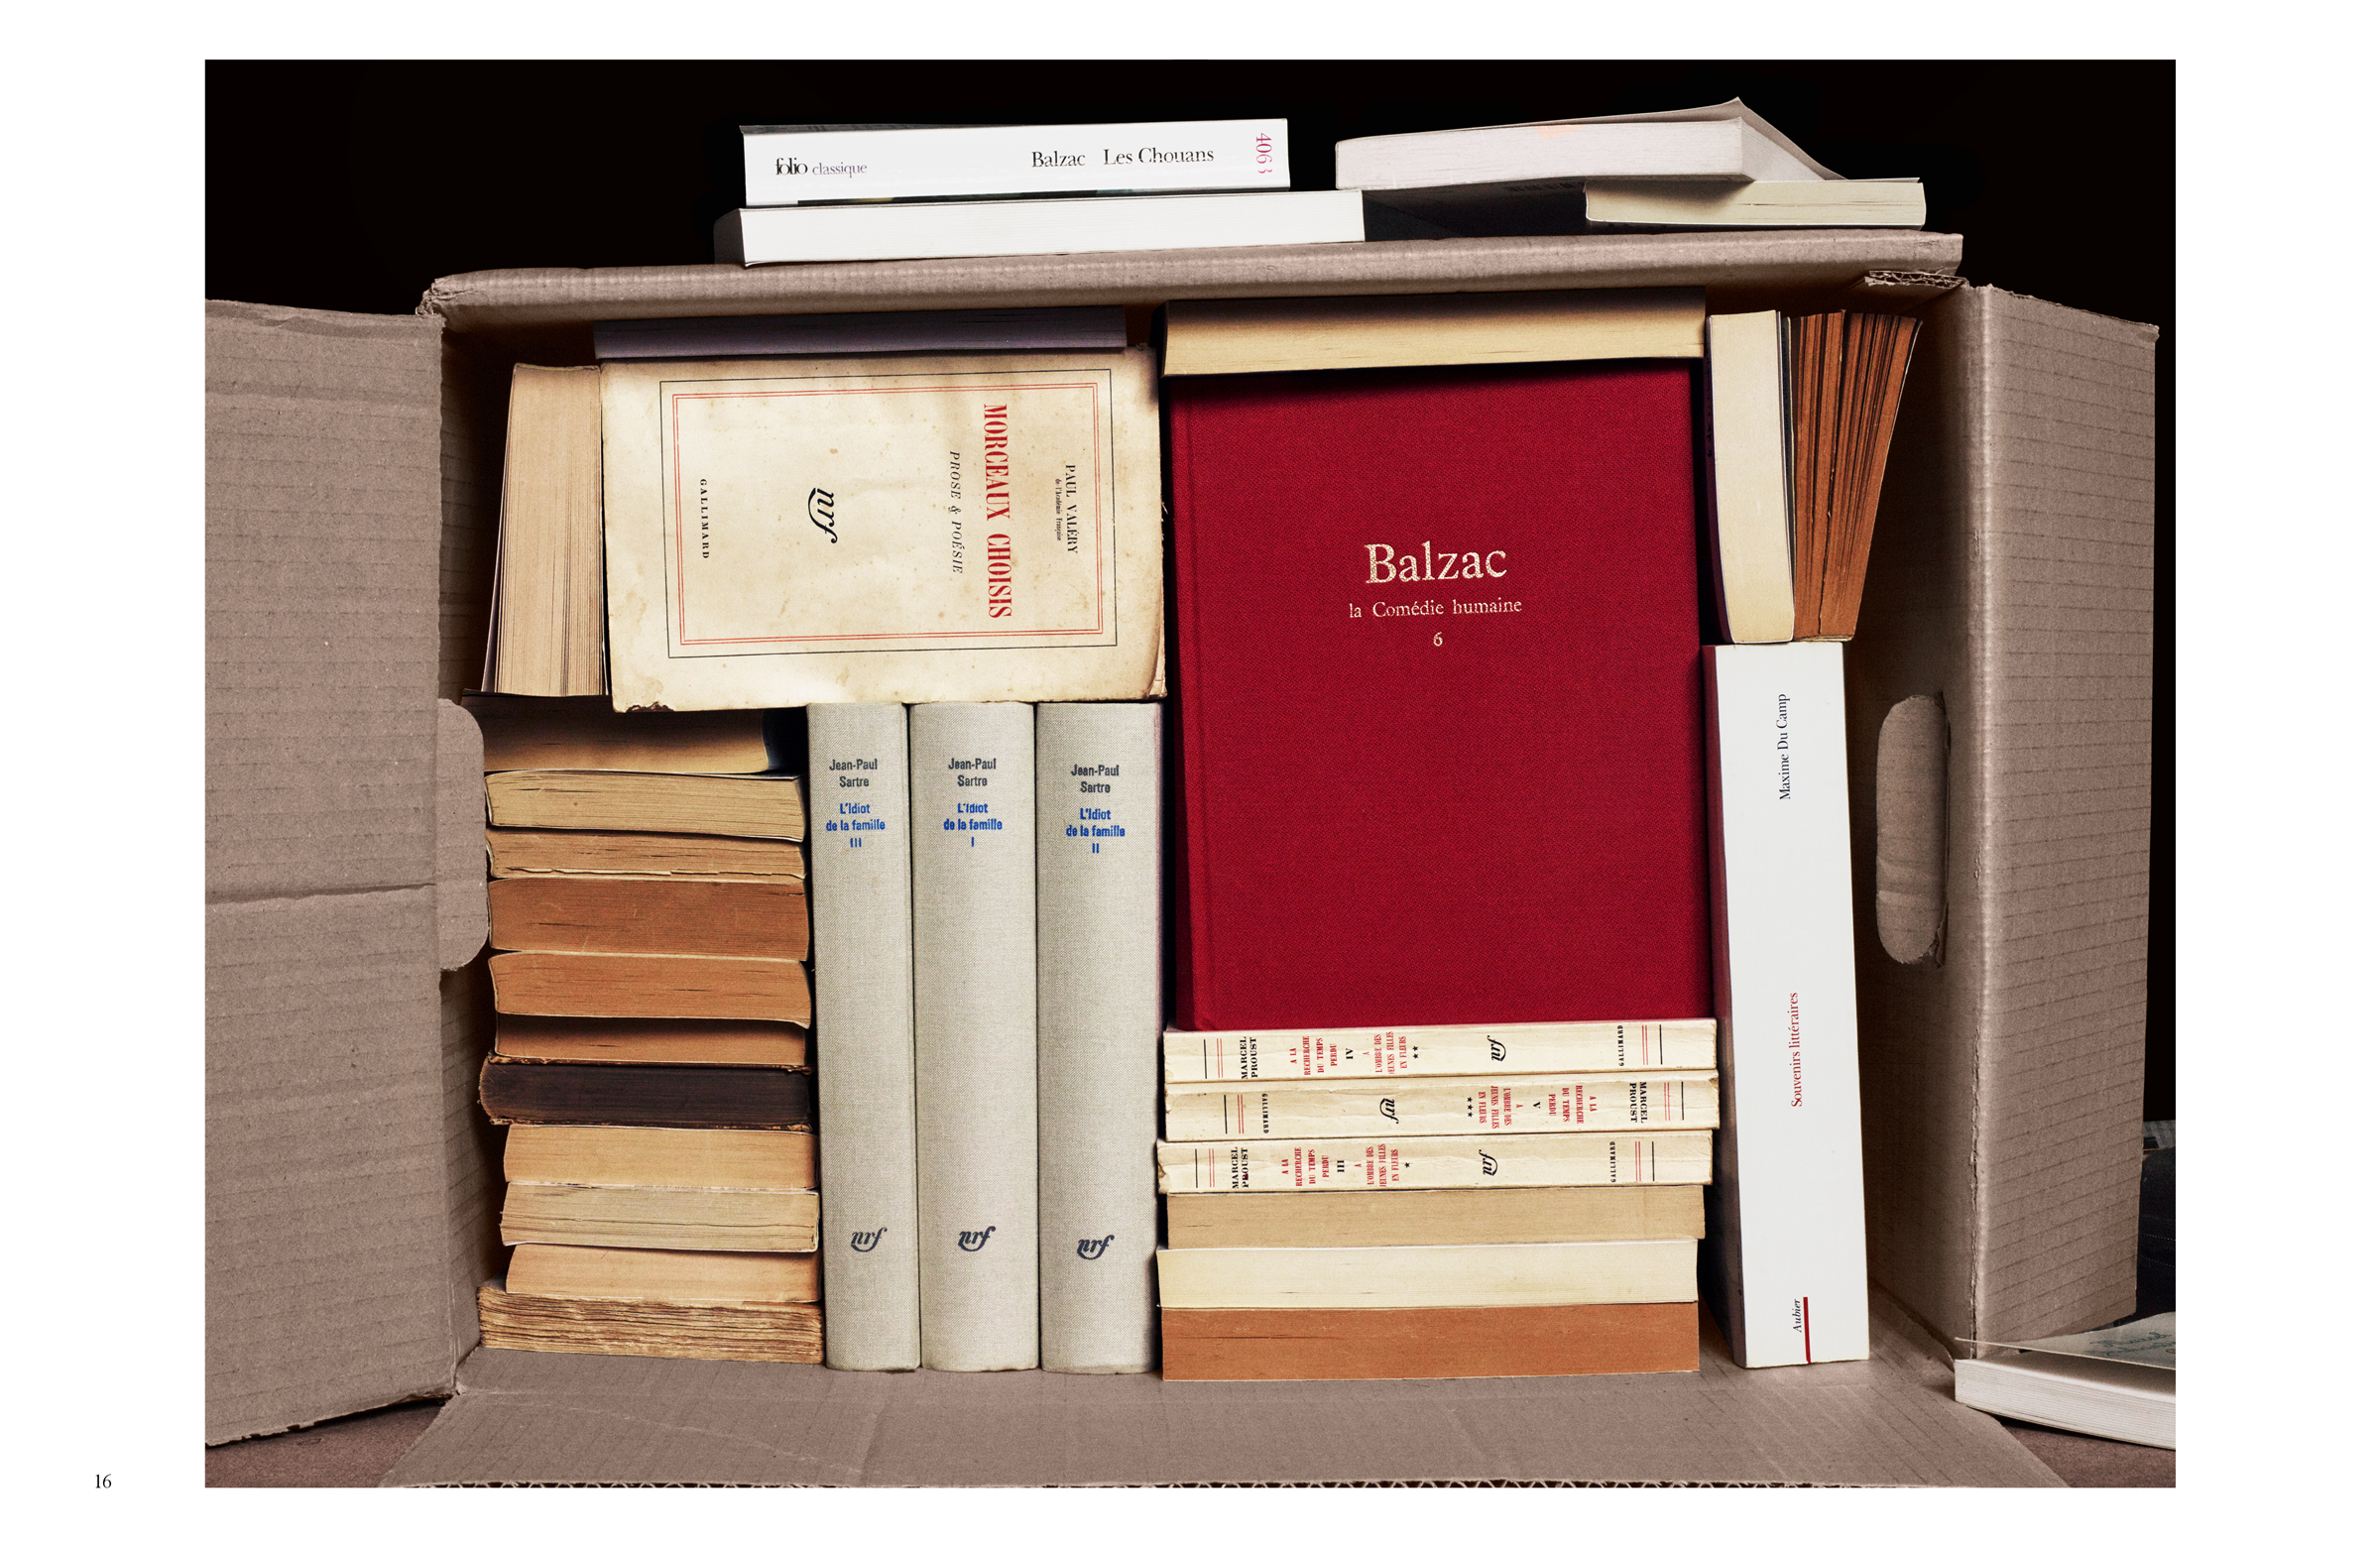 Jean-Luc Godard's Archive STÉPHAN CRASNEANSCKI — WHAT WE LEAVE BEHIND photography book libraryman